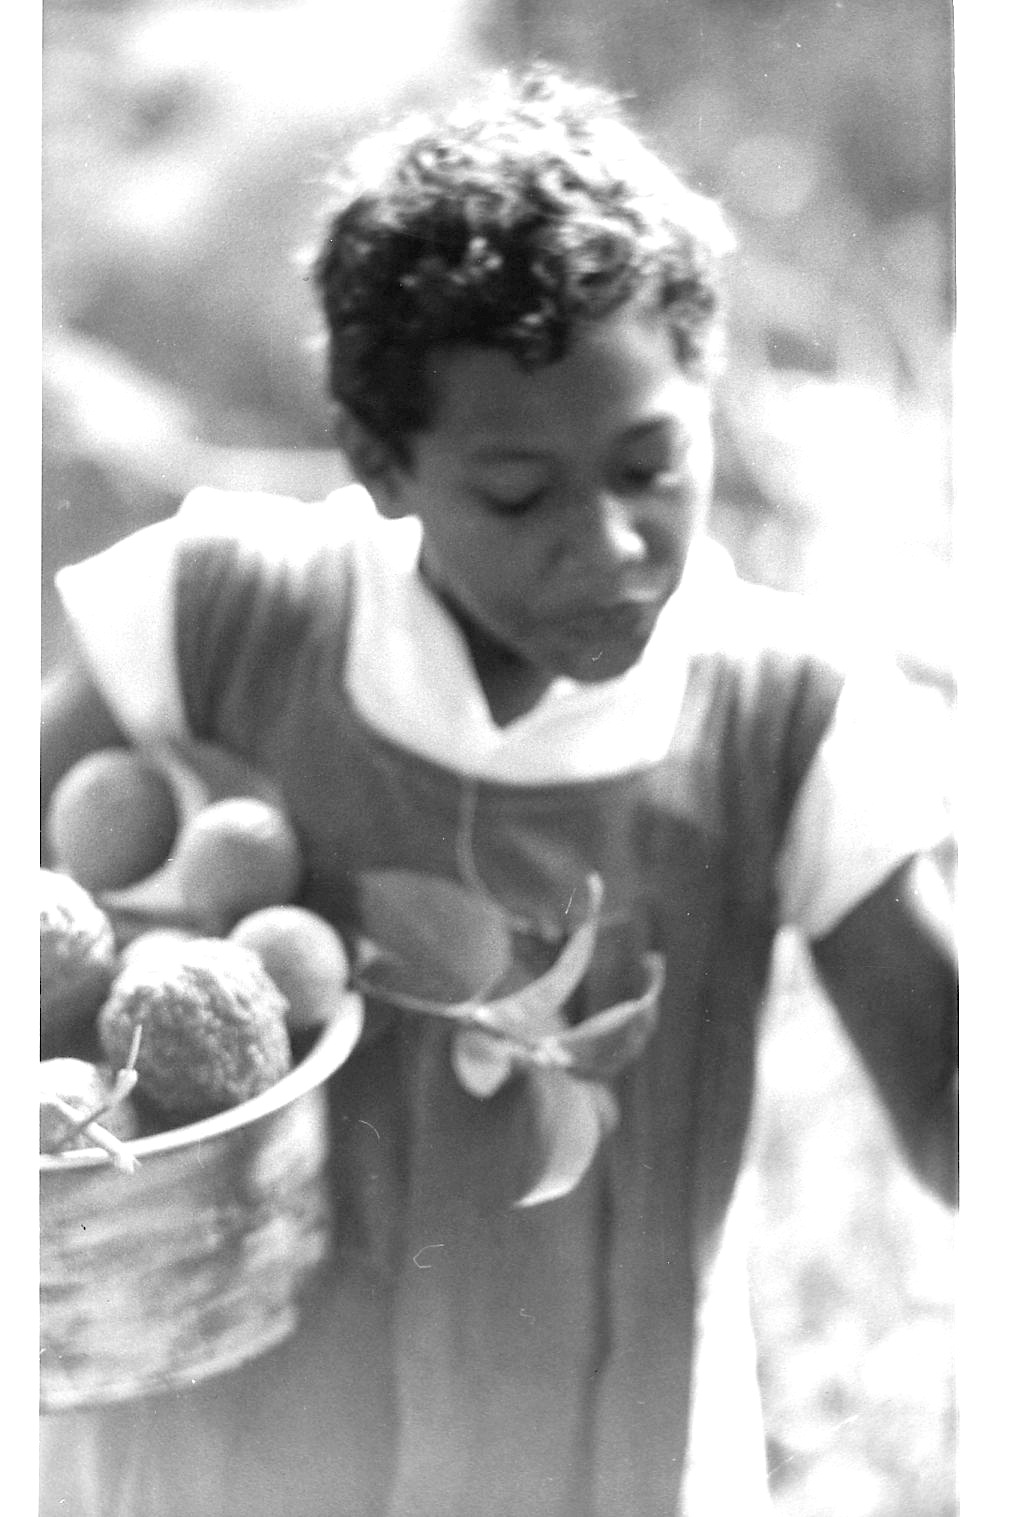 Daily Life In Ono I Lau Fiji 50 Years Ago Girl With Pan Full Of Fruit